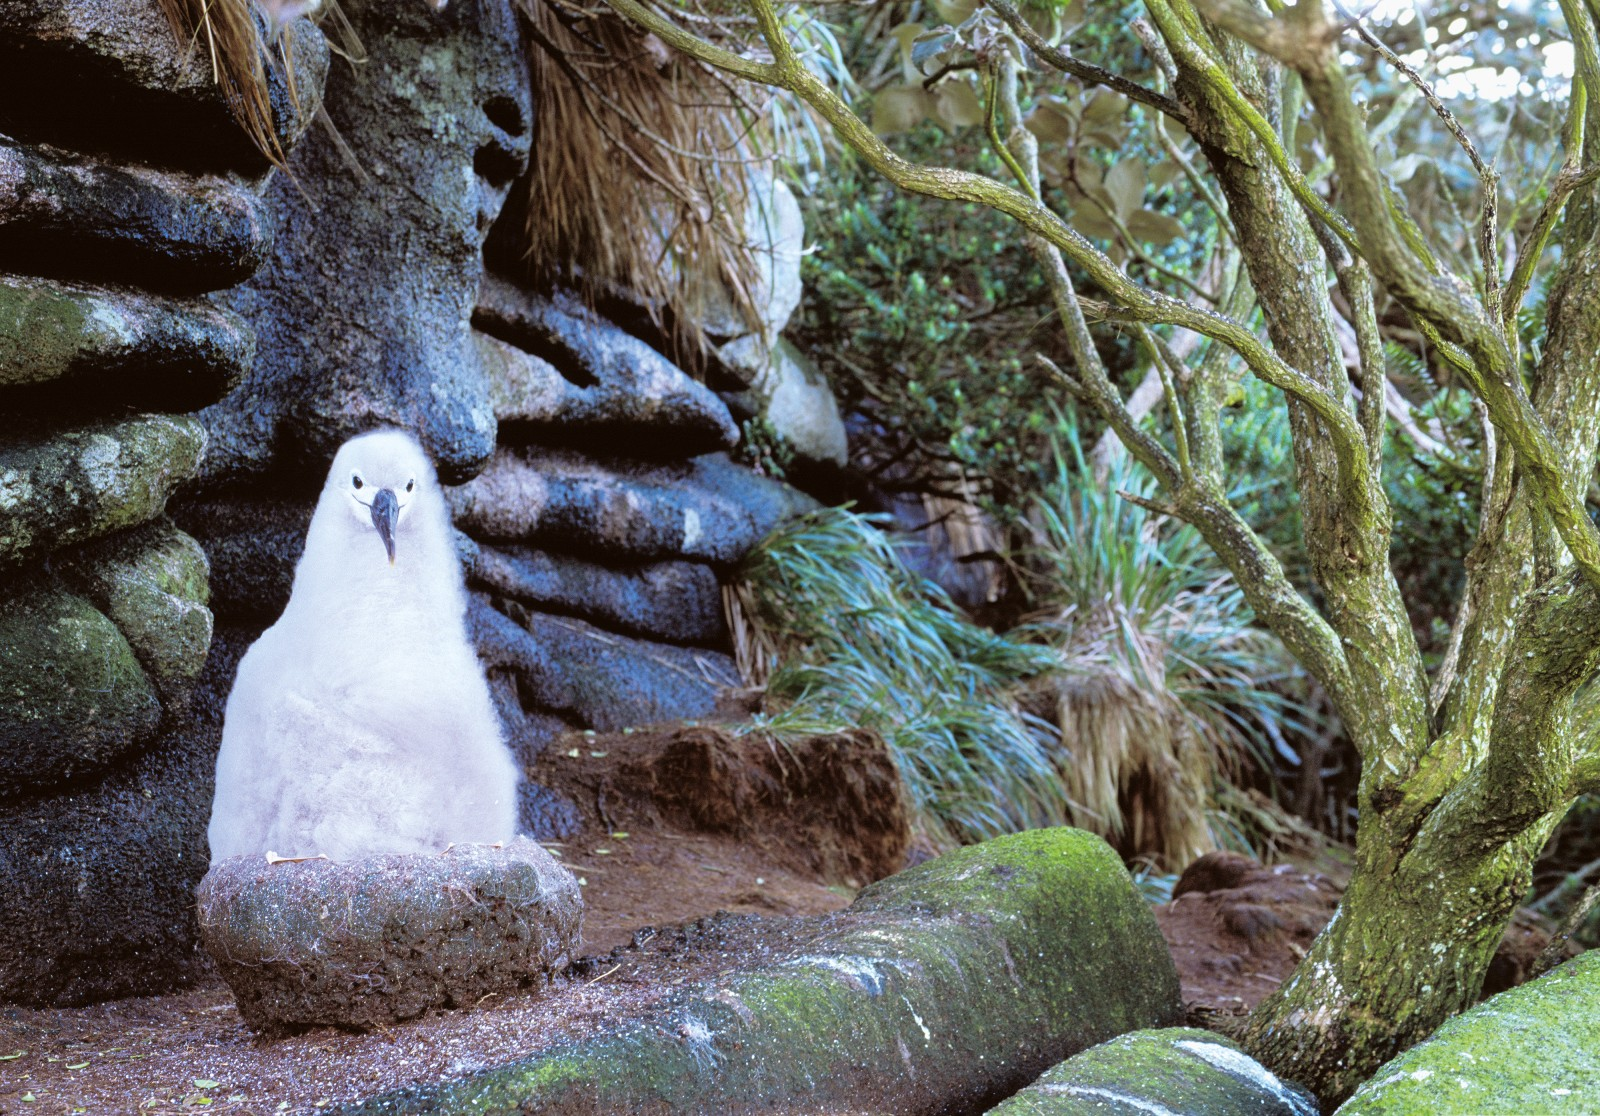 The southern Buller's albatross is one of the few albatross species to nest within forests. On the Snares, nest pedestals are clustered around the forest edges, so that adults do not have to walk too far when feeding their chicks. (They land in the open to avoid damaging their wings, and need a substantial cliff from which to take off.) A pair tends to use the same nest site year after year, adding successive layers of soil and vegetation to their pedestal, which can grow to 40 cm tall. A chick occupies the family pedestal continuously from hatching until it is ready to leave the colony—a period of nearly six months.